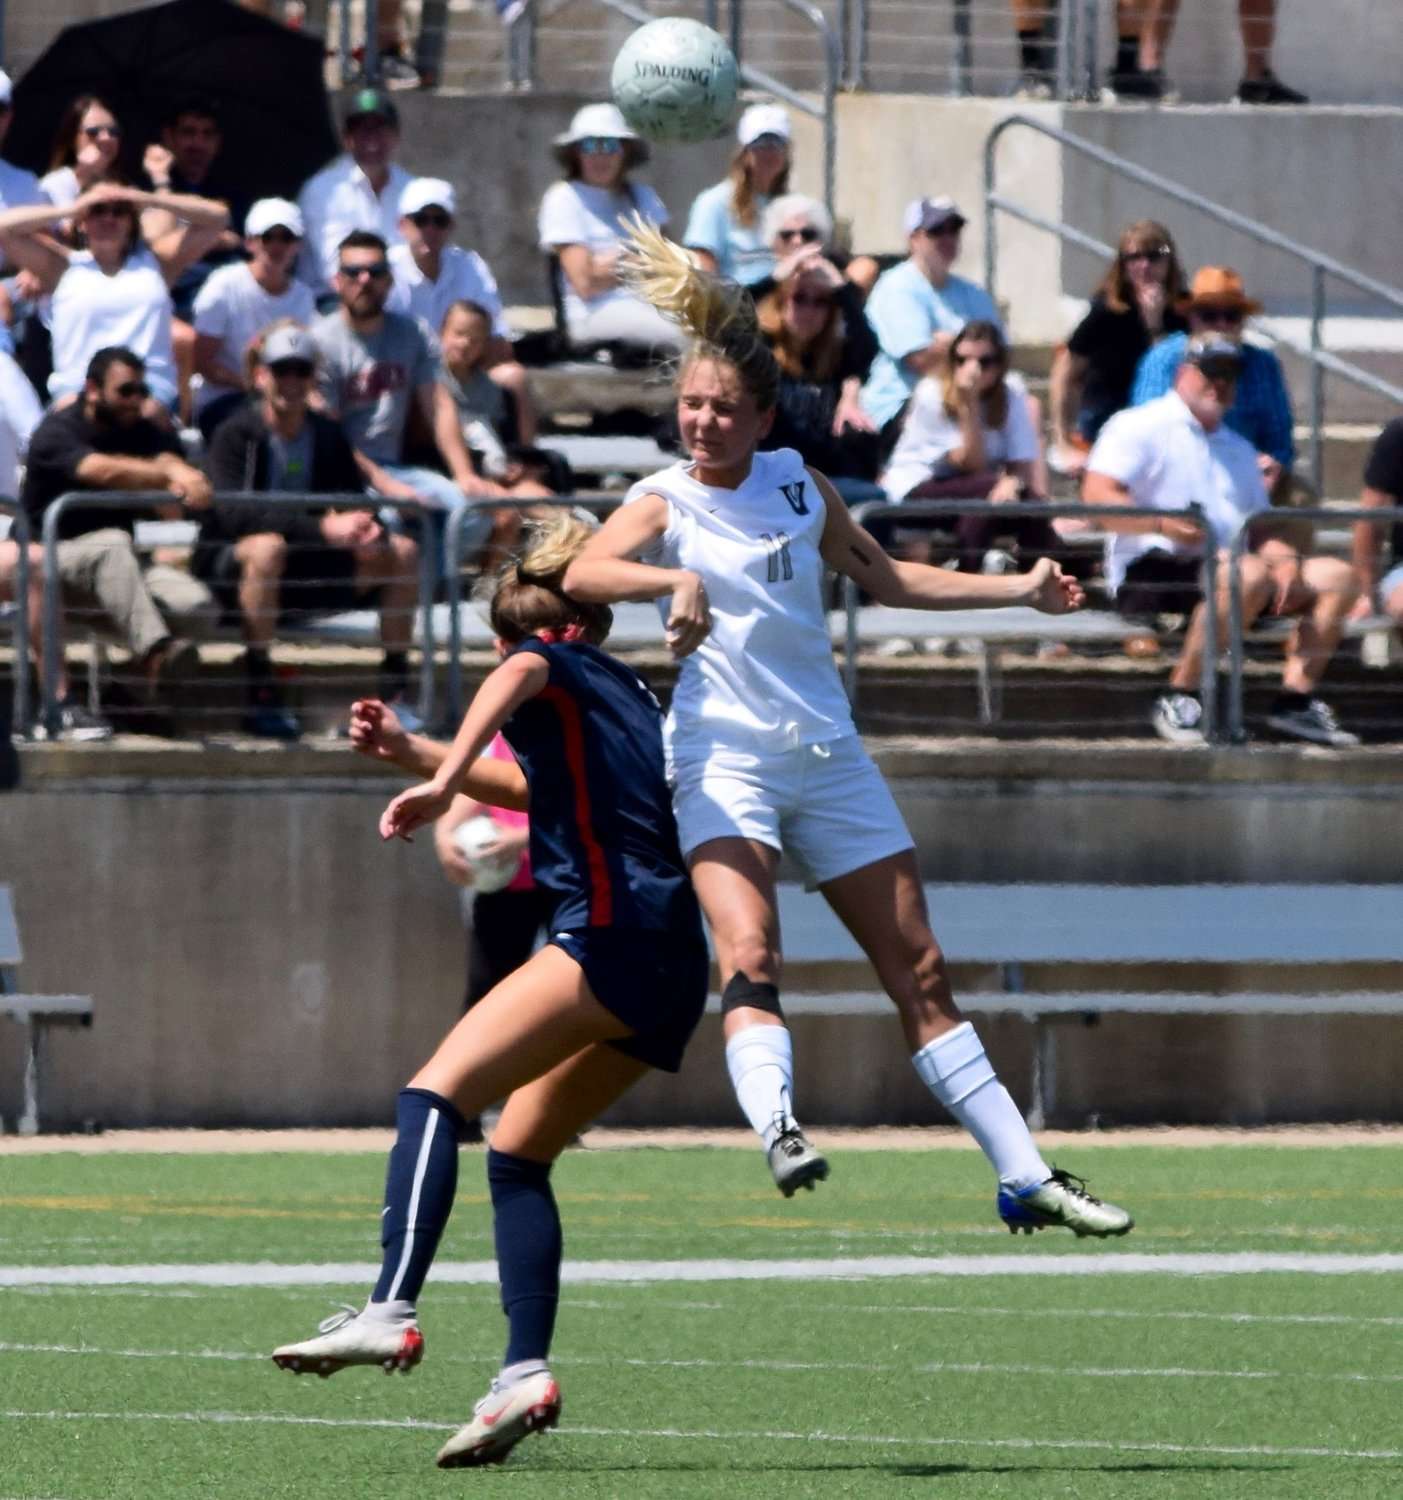 Stormy Meier and Vandegrift lost to Allen 1-0 in the regional quarterfinals Friday afternoon at Kelly Reeves Athletic Complex.